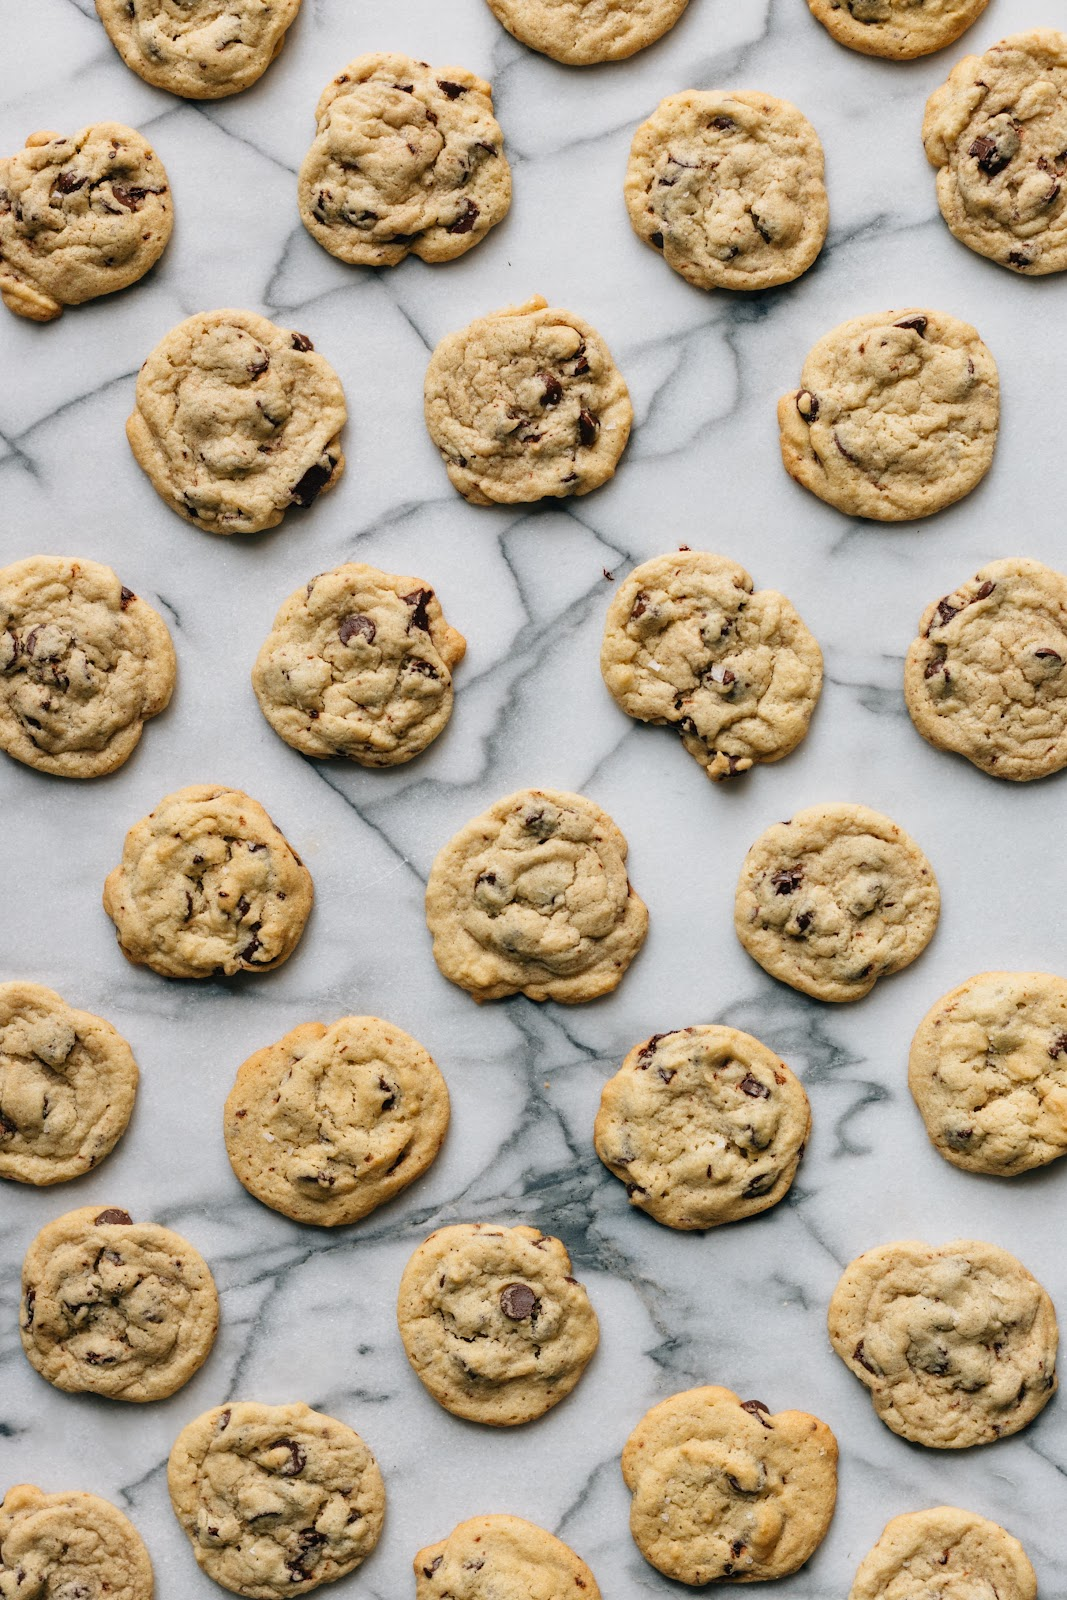 Insomnia Cookies NYC (A guide)